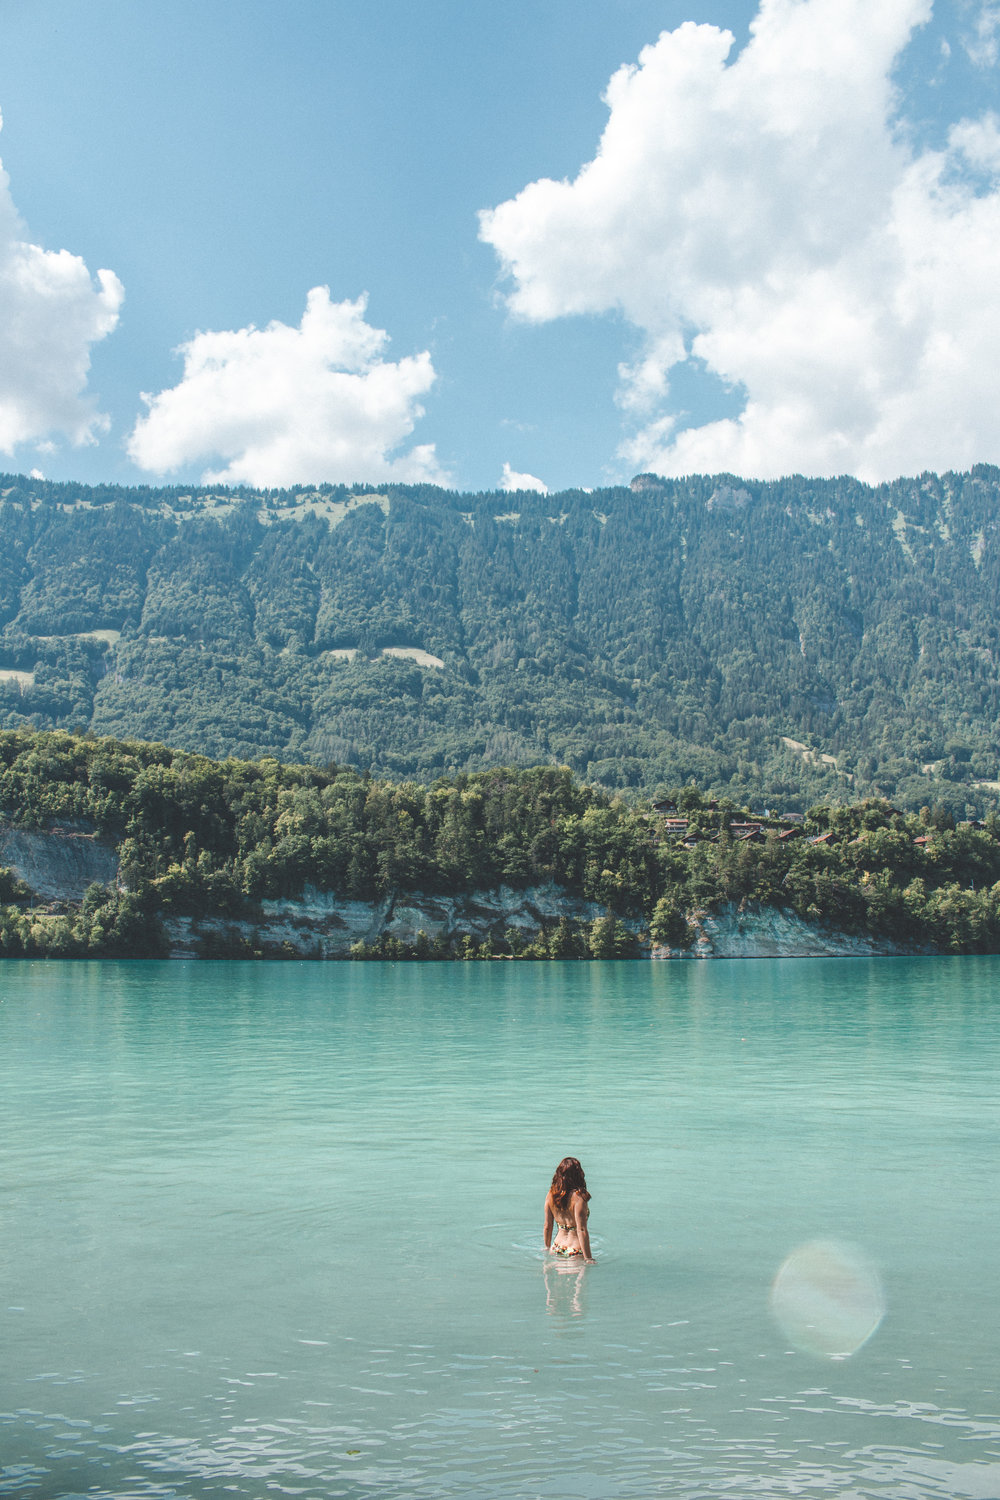 Girl swimming in mountain lake